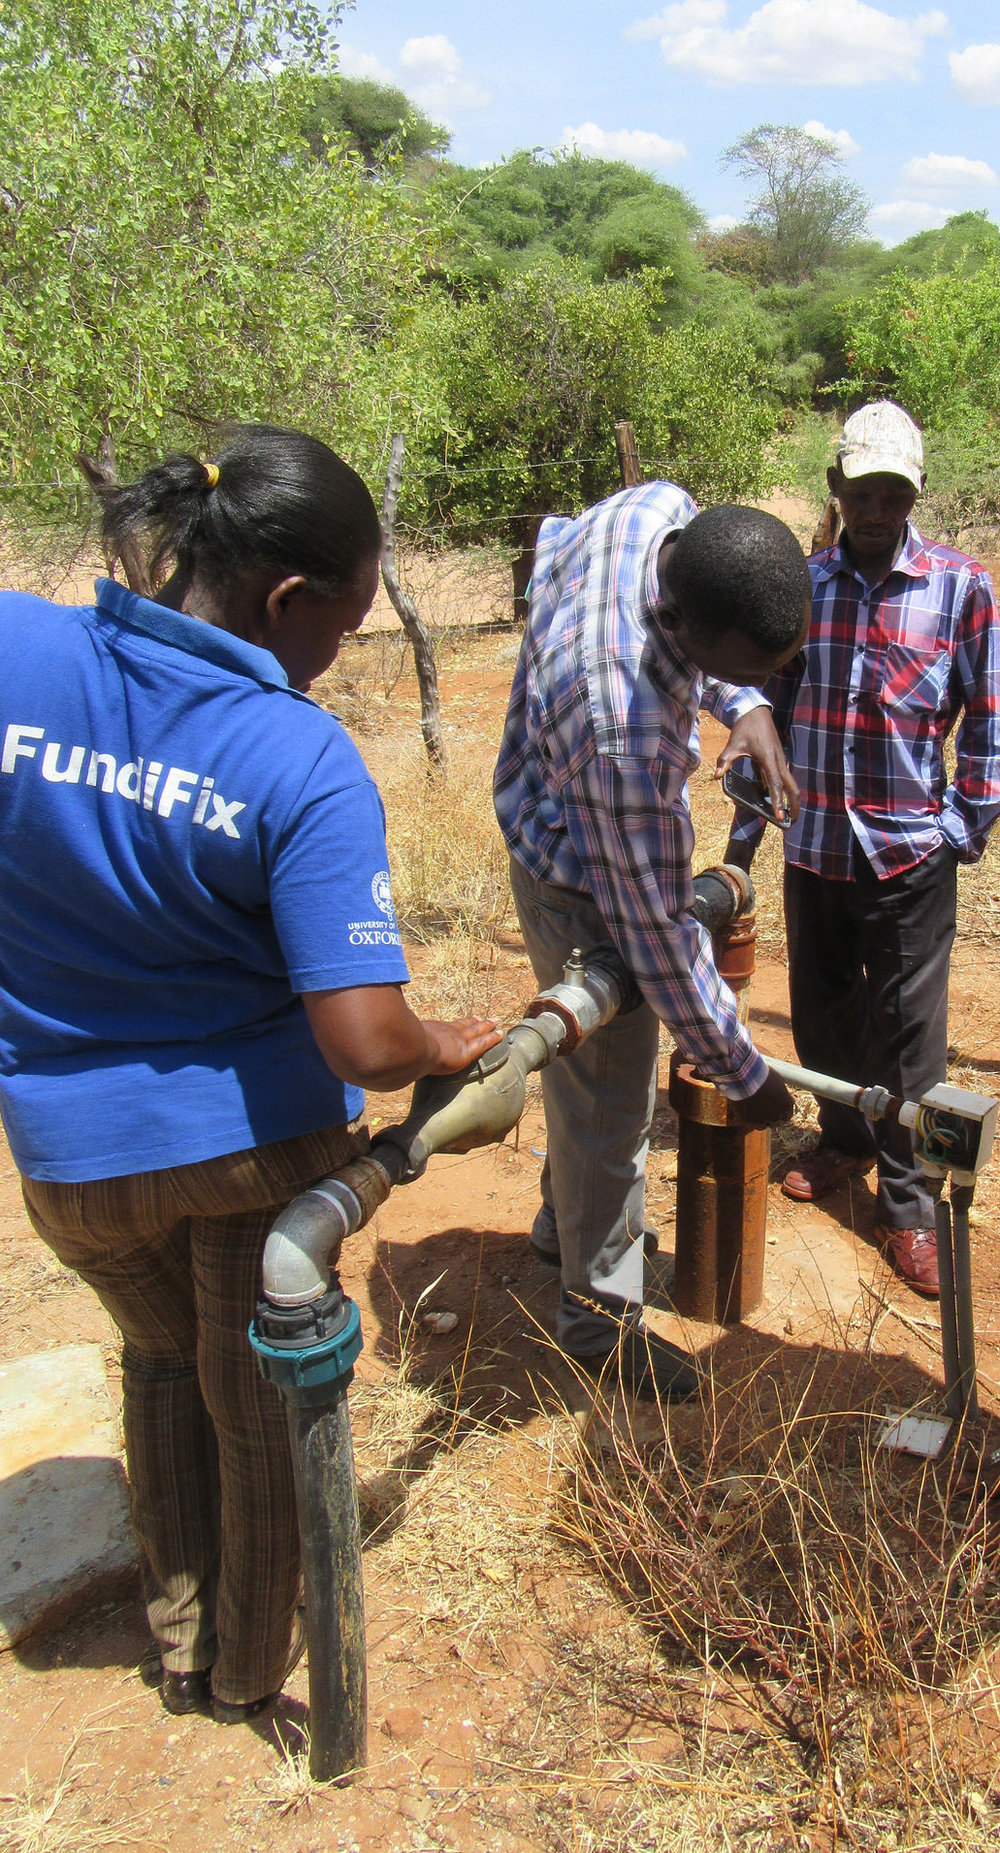 A Smart Handpump is checked in Kitui County, Kenya by a FundiFix mechanic.    Source   : Rob Hope / REACH via Flickr